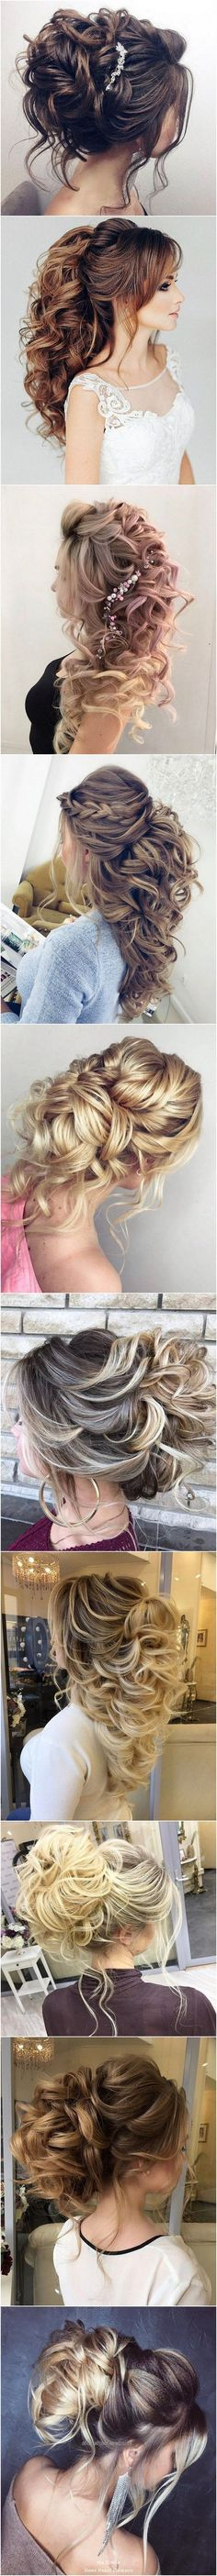 Perfect Elstile Long Wedding Hairstyle Inspiration / www.deerpearlflow… The post Elstile Long Wedding Hairstyle Inspiration / www.deerpearlflow…… appeared first on Aloha Haircuts .